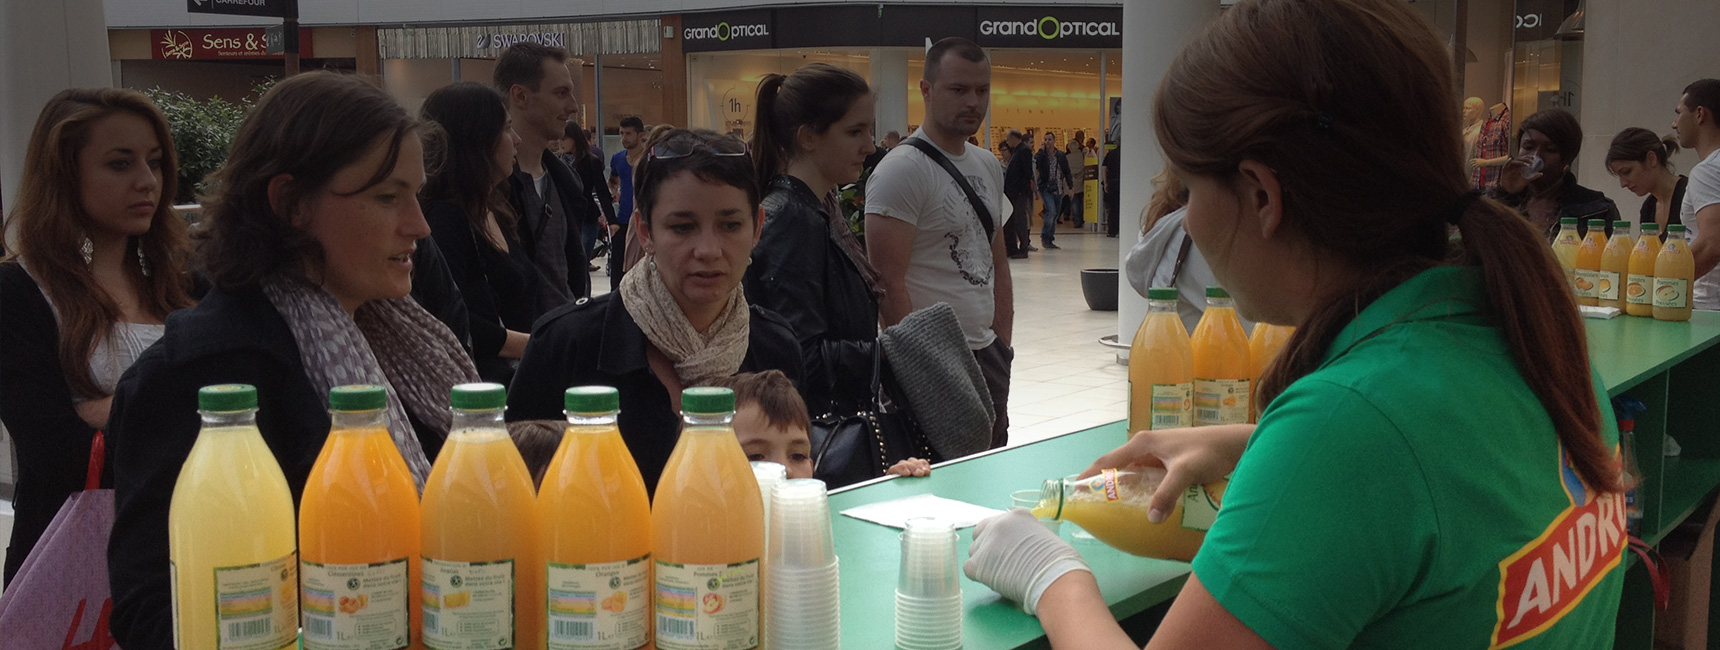 Stand de dégustation des jus Andros - Keemia Shopper Marketing - Agence d'activation shopper marketing phygitale